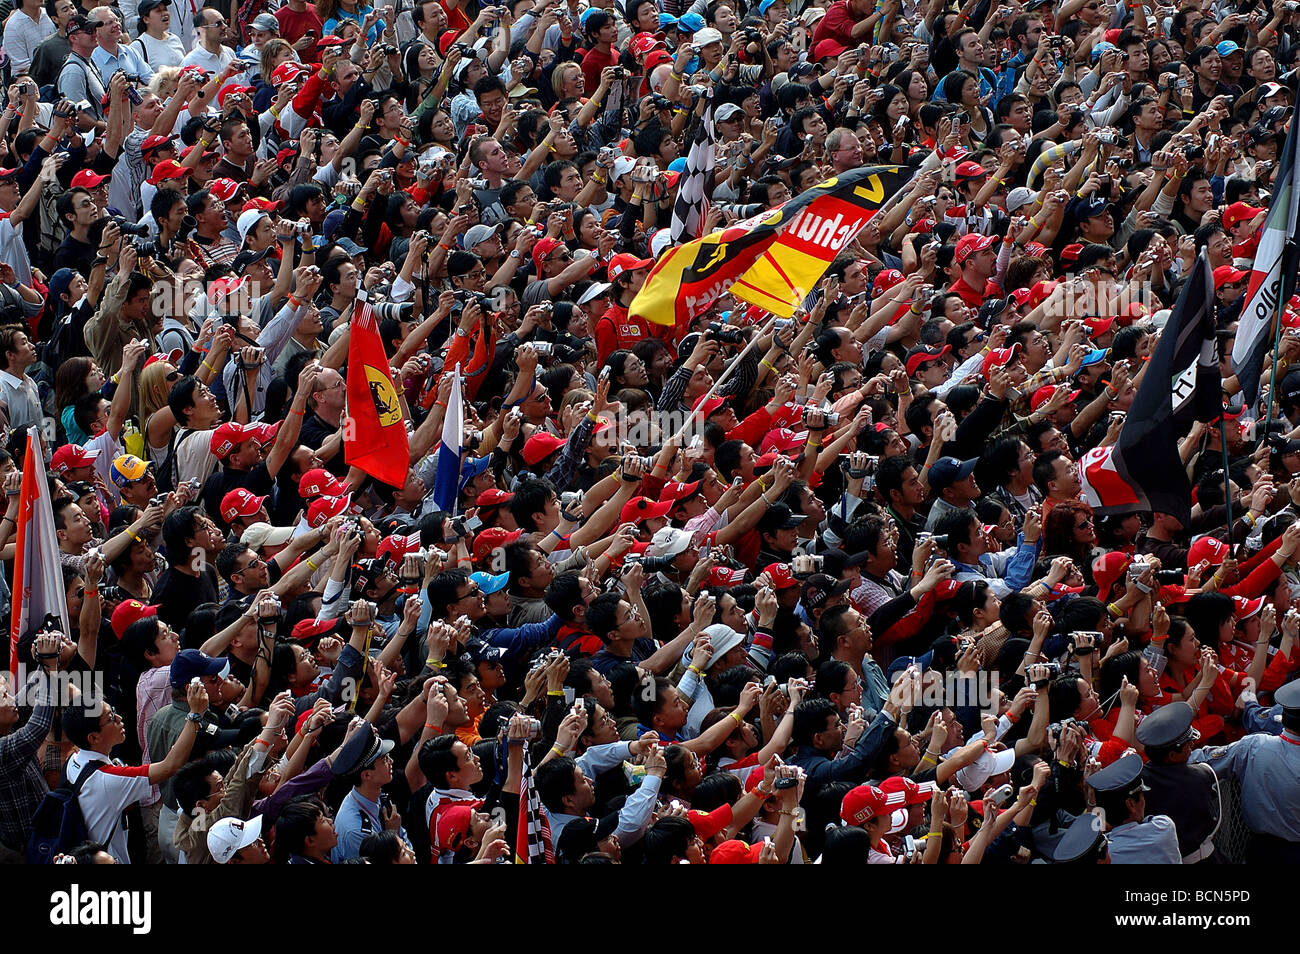 Audience taking photo in Shanghai Circuit for Formula 1 racing in Shanghai, China - Stock Image